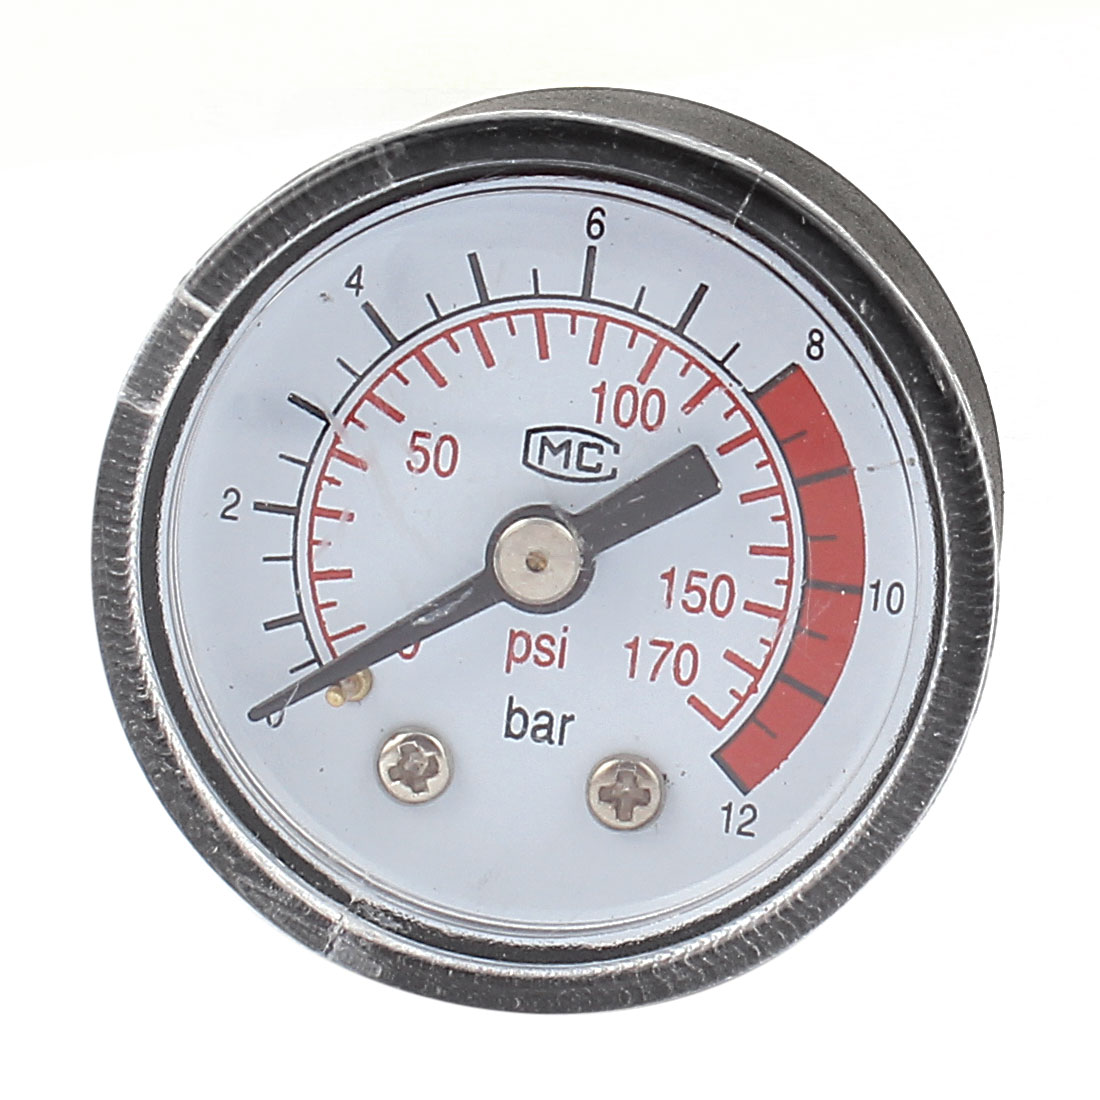 Air Compressor 1/8BSP Male Threaded Adapter 0-12 Bar 0-170PSI Pressure Gauge Manometer